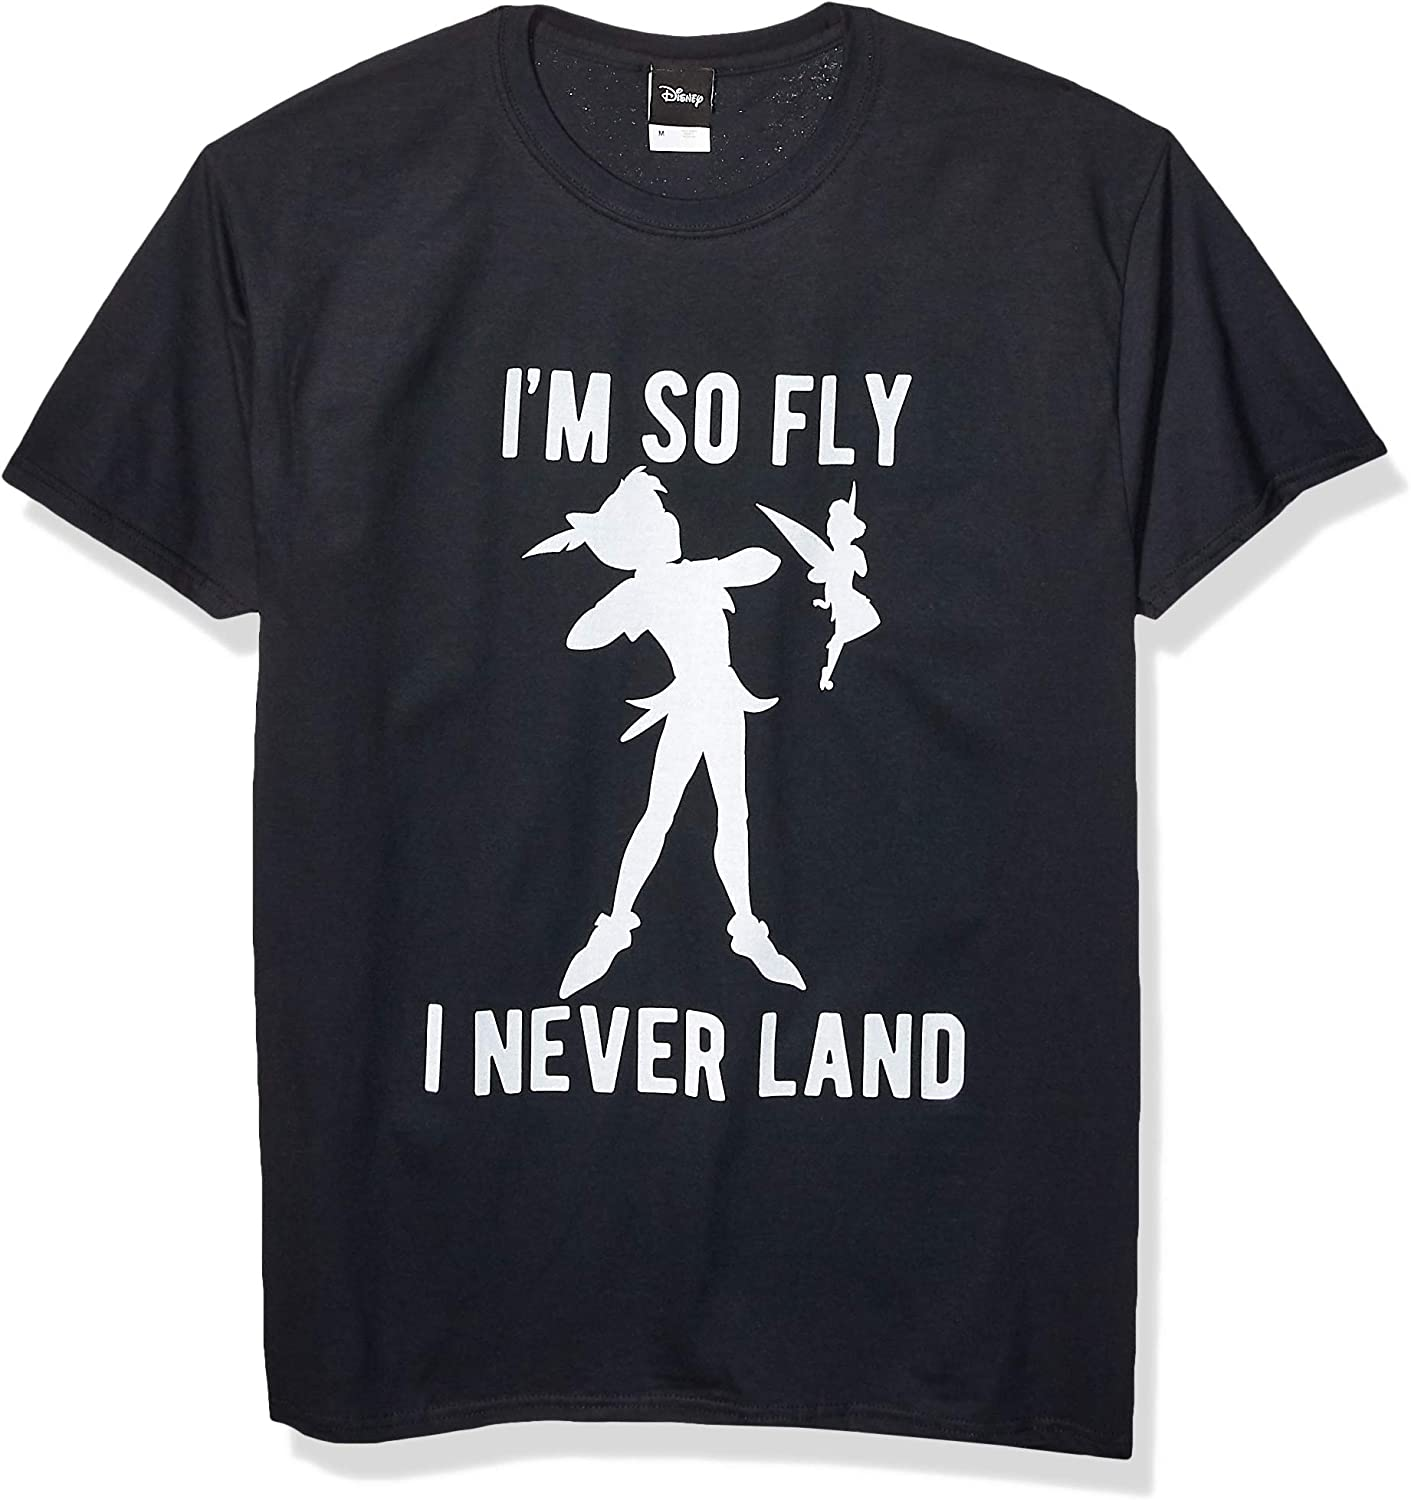 Disney Peter Pan Tinkerbell I'm So Fly I Neverland Graphic T-Shirt